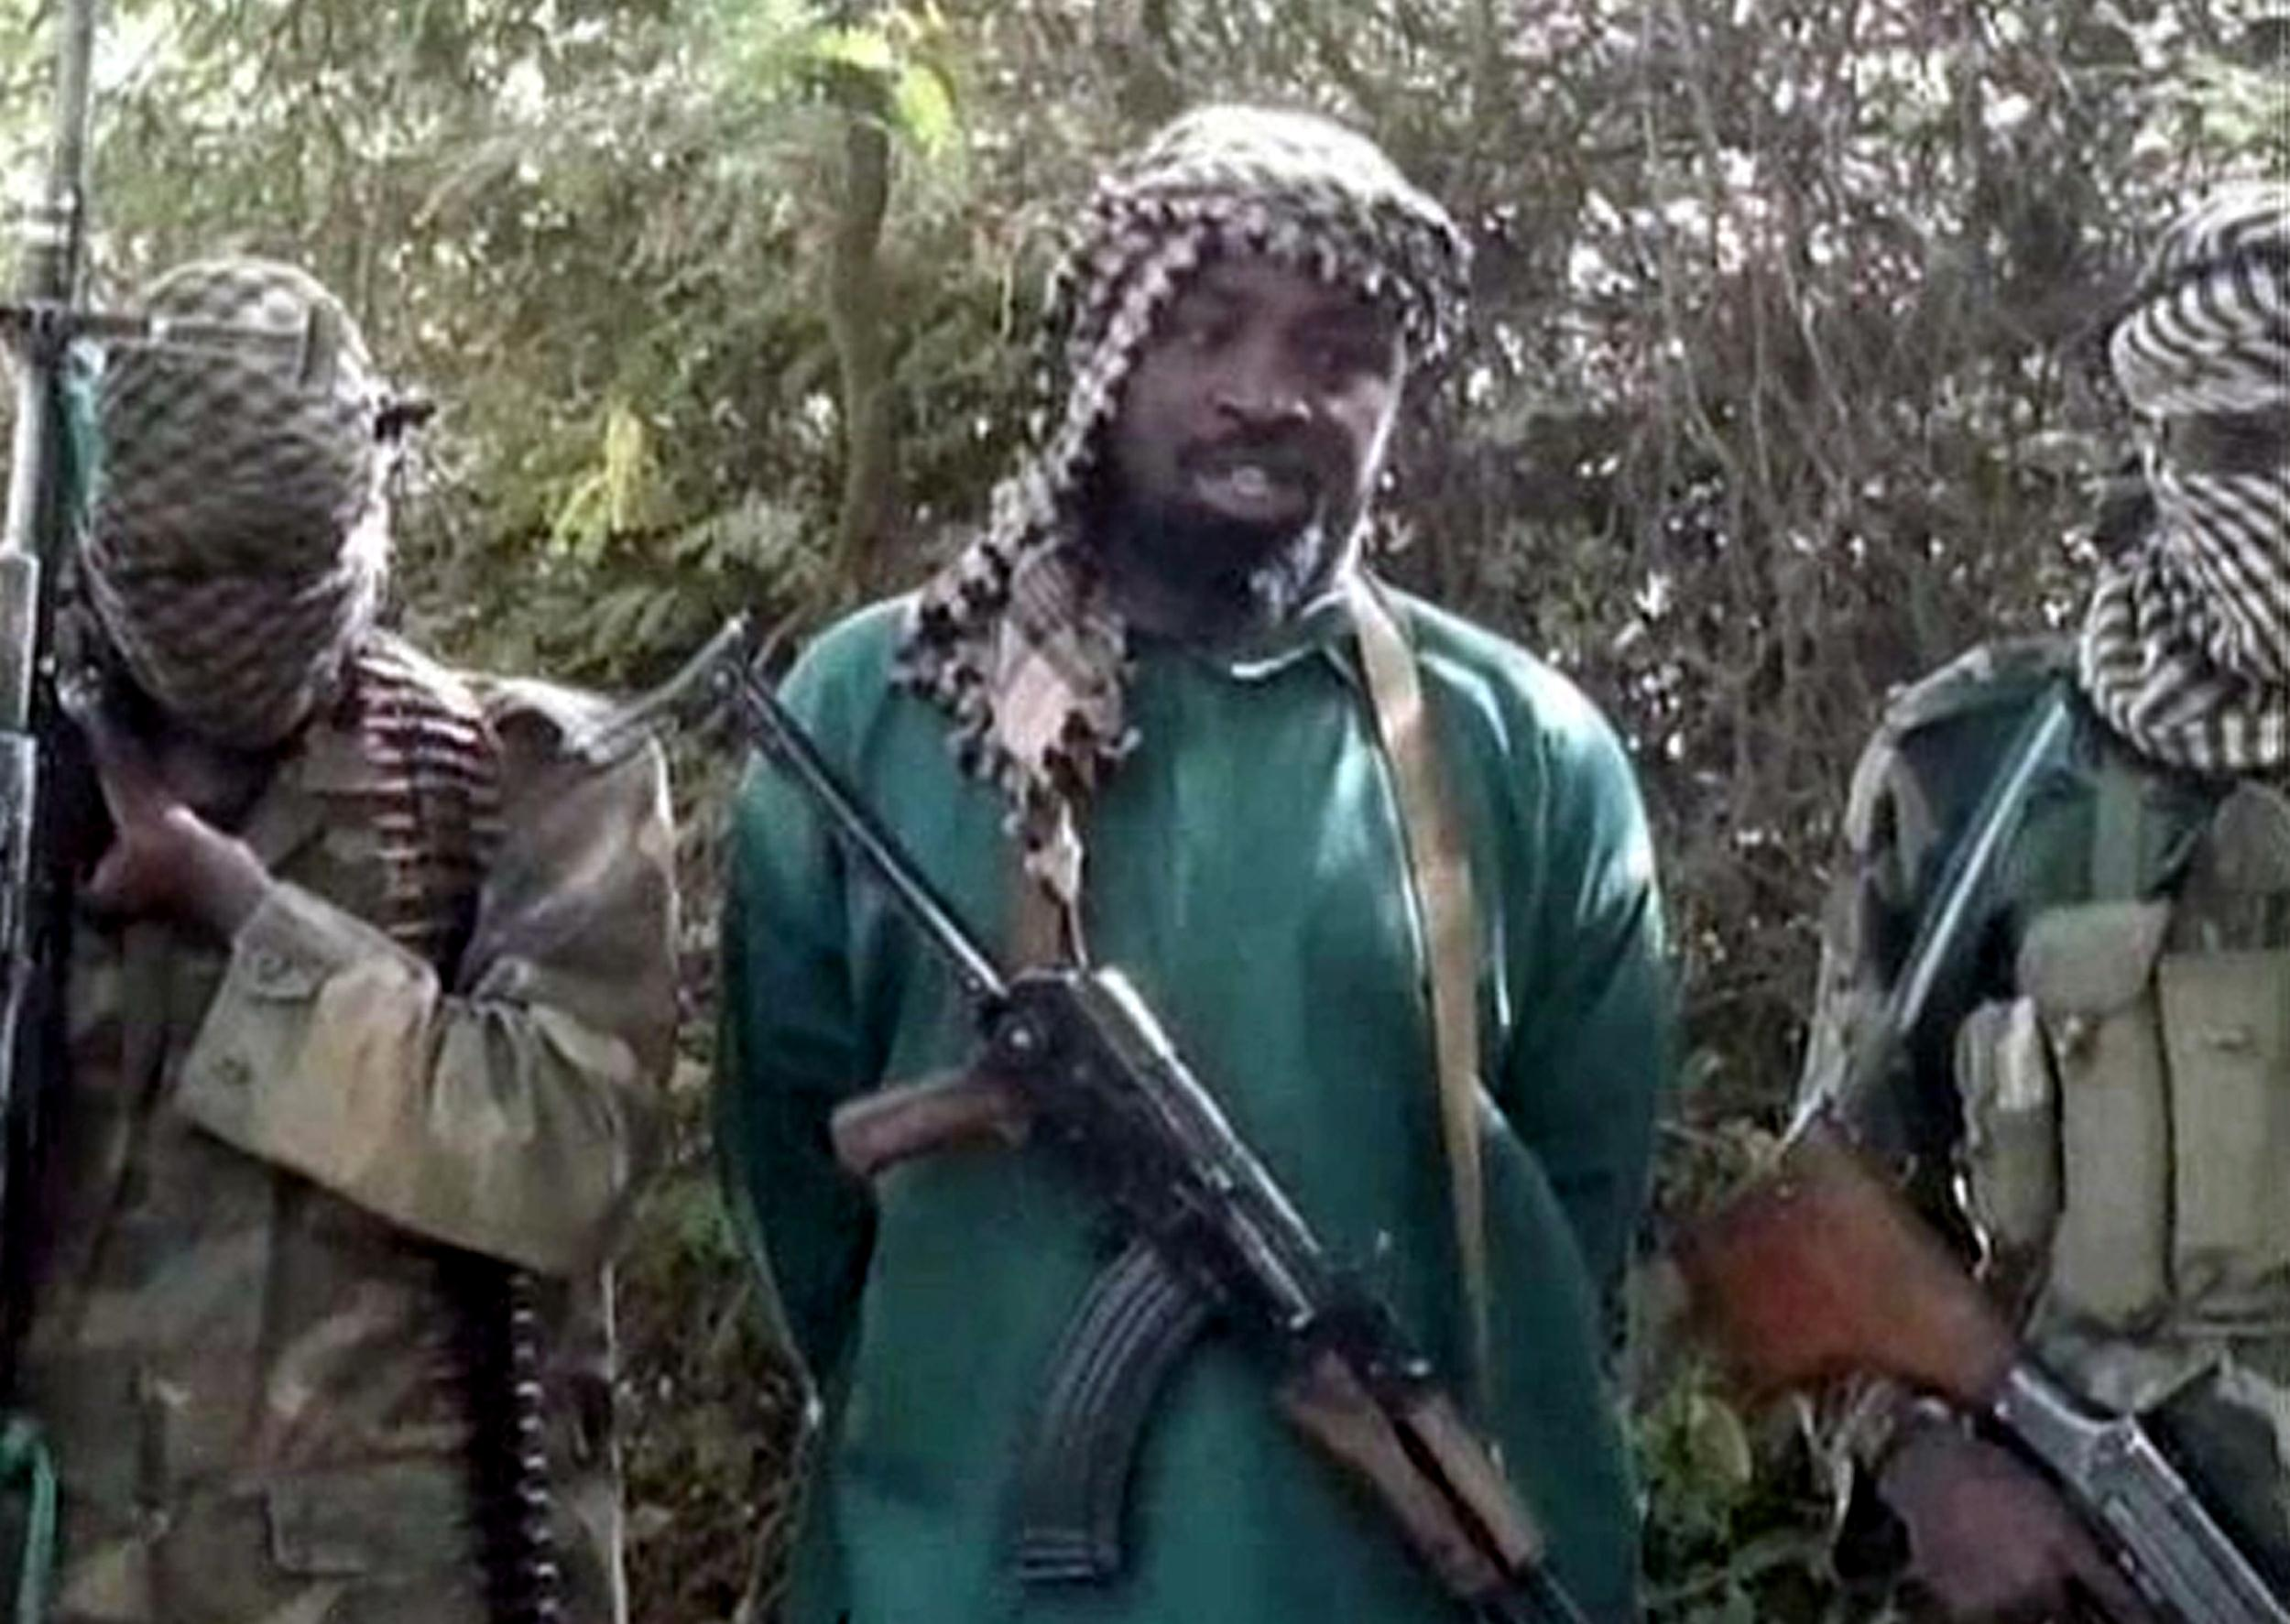 Image: Abubakar Shekau, center, the suspected leader of Nigerian Islamist extremist group Boko Haram